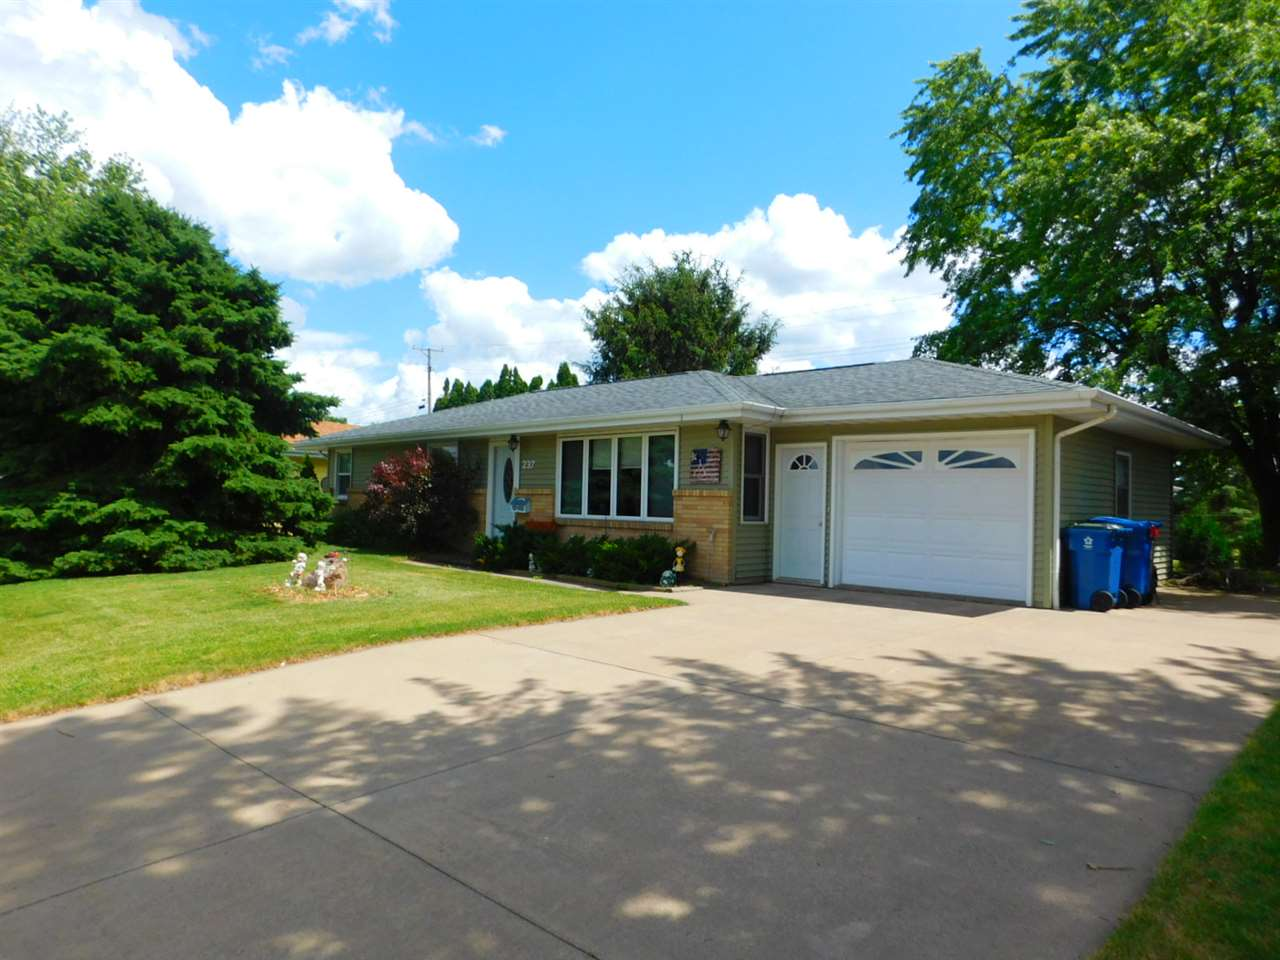 237 St Ann Ave, Dickeyville, WI 53808